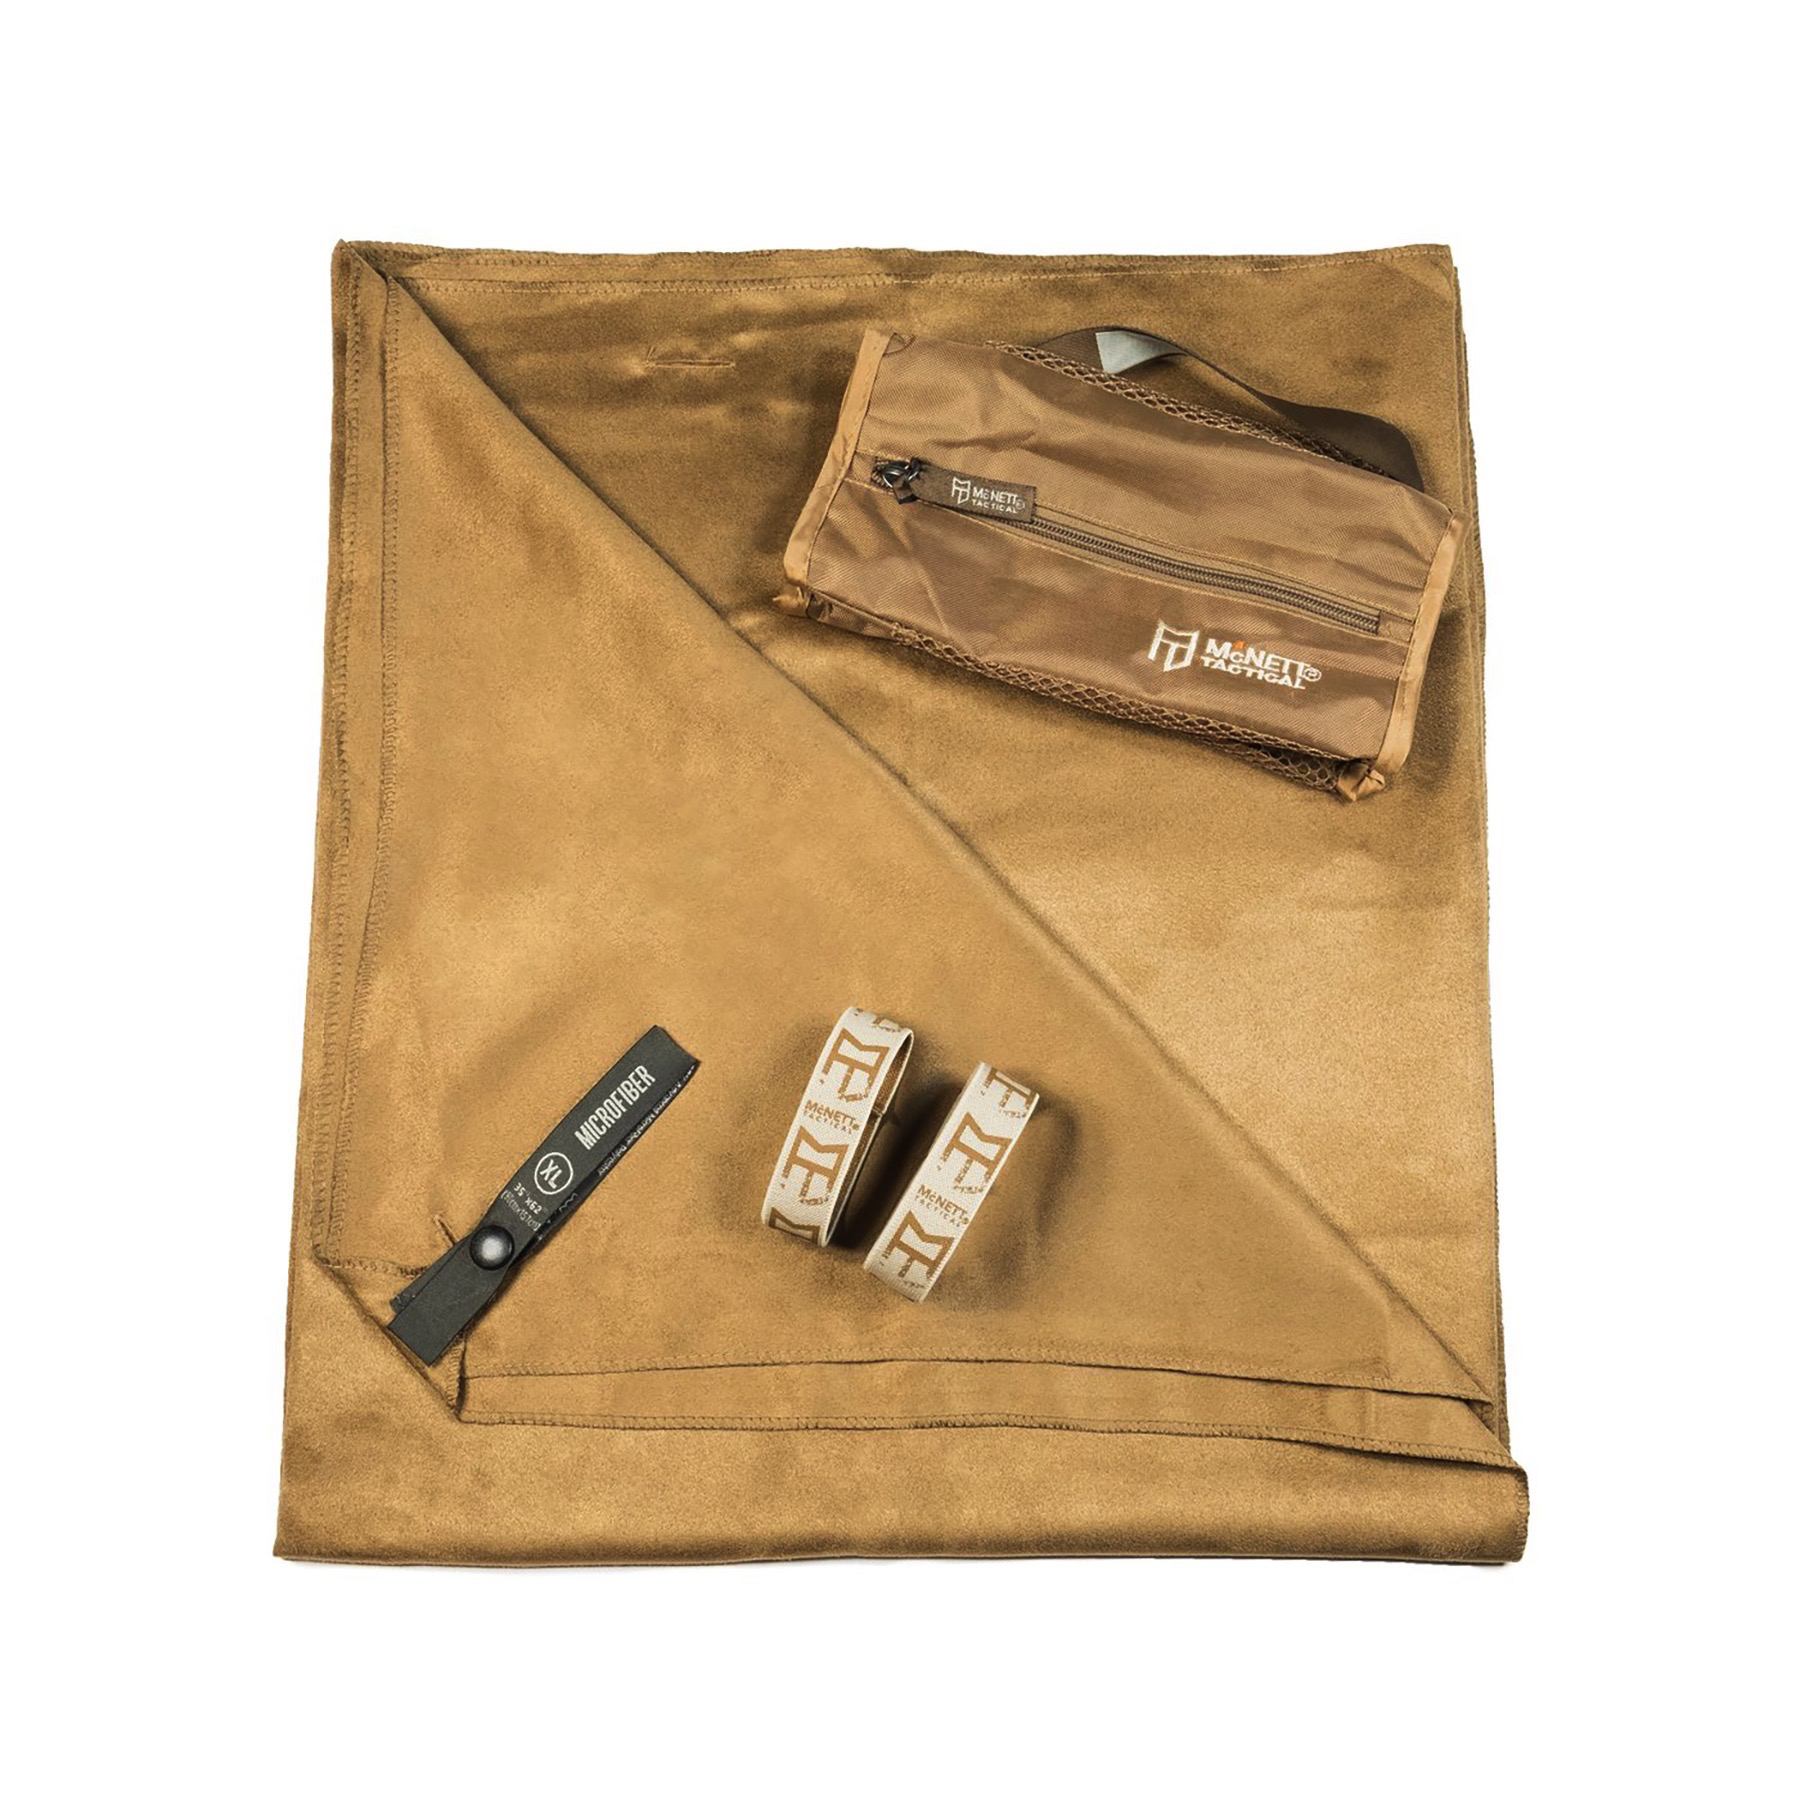 a3abeec49b Details about Gear Aid Tactical Ultra Compact Microfiber Towel